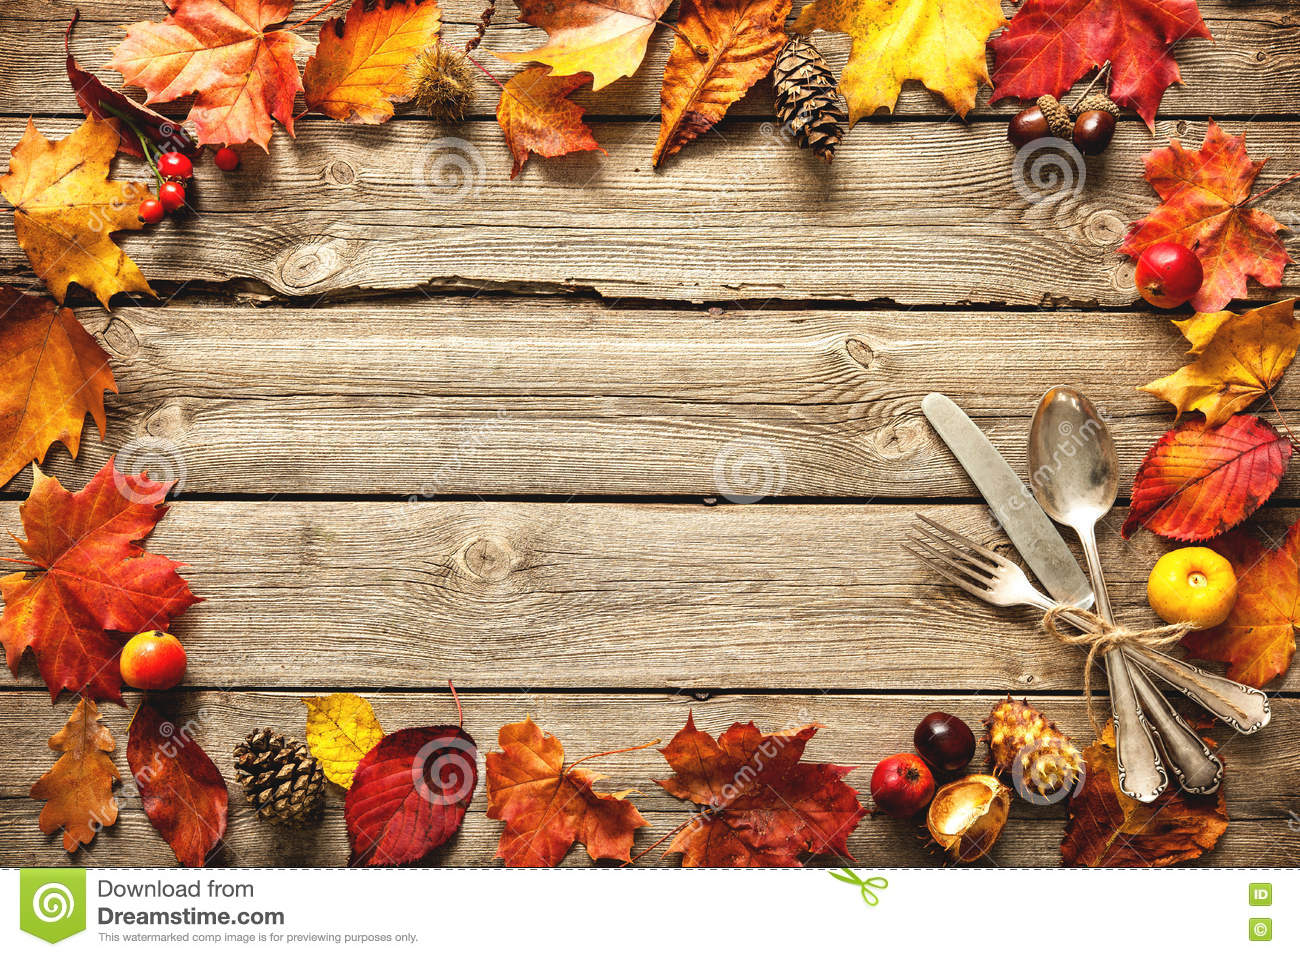 Fall Leaves Wallpaper Border Thanksgiving Autumn Background With The Vintage Silverware